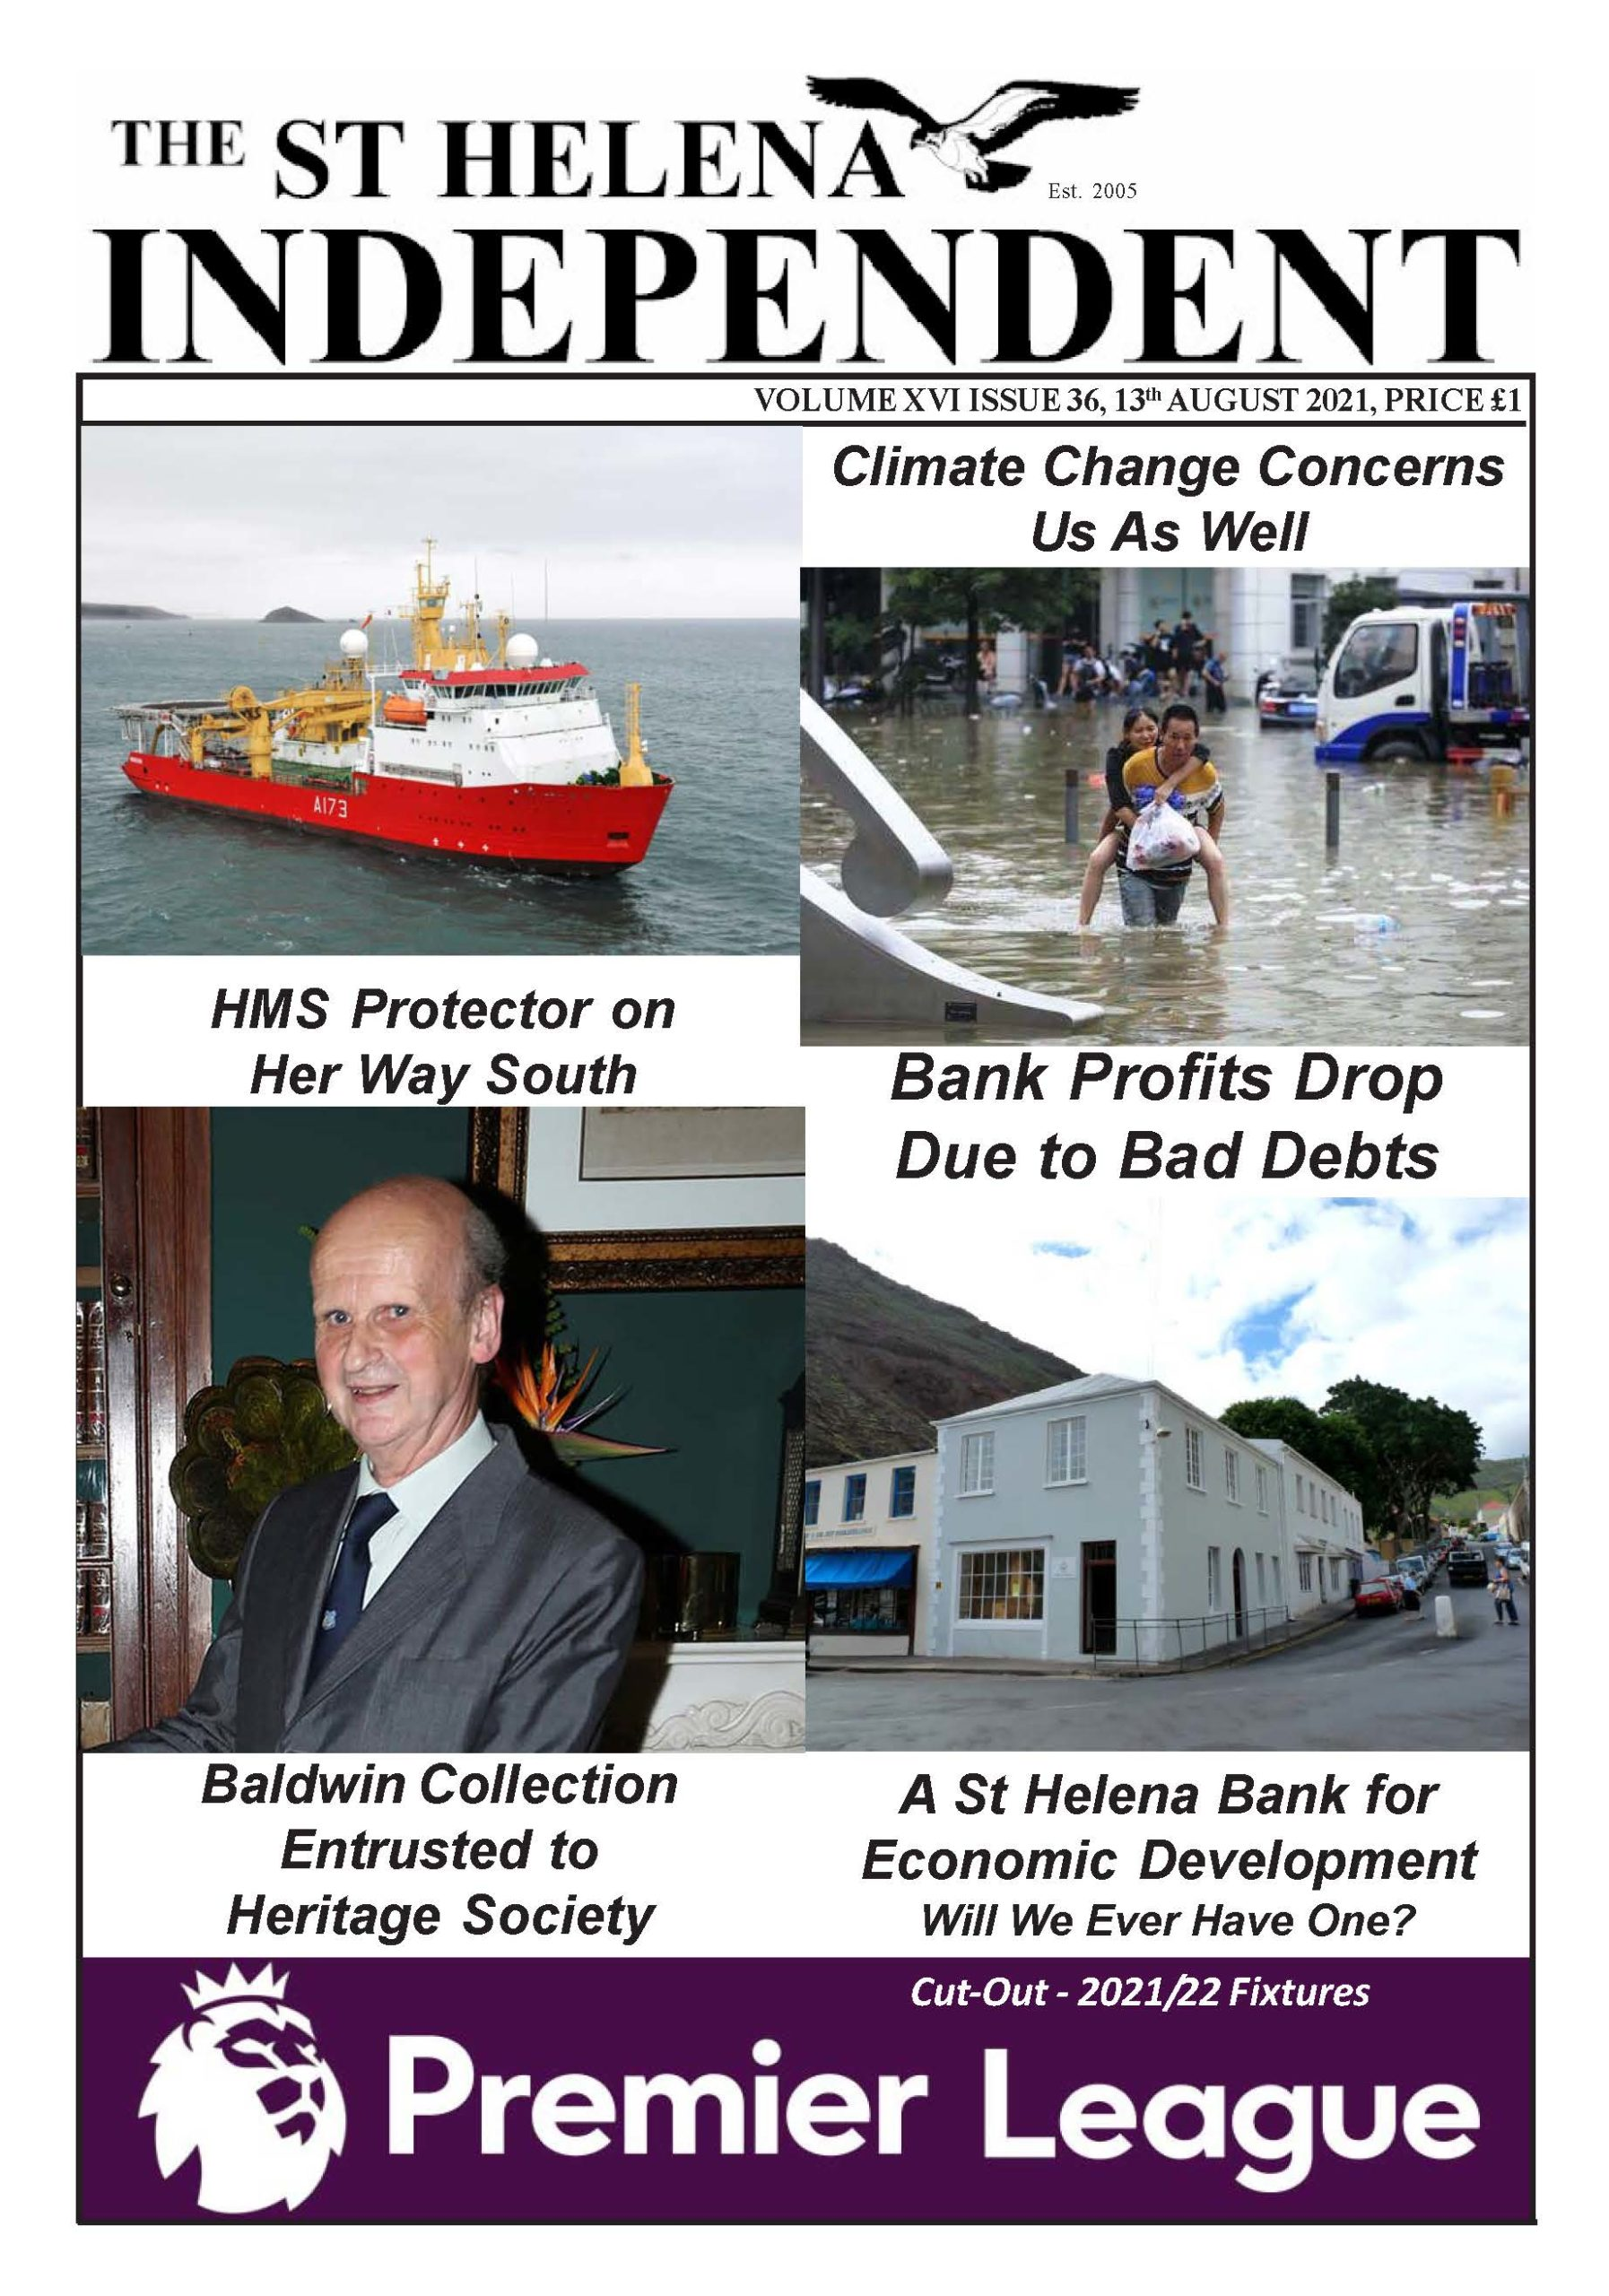 St Helena Independent 20210813 p1